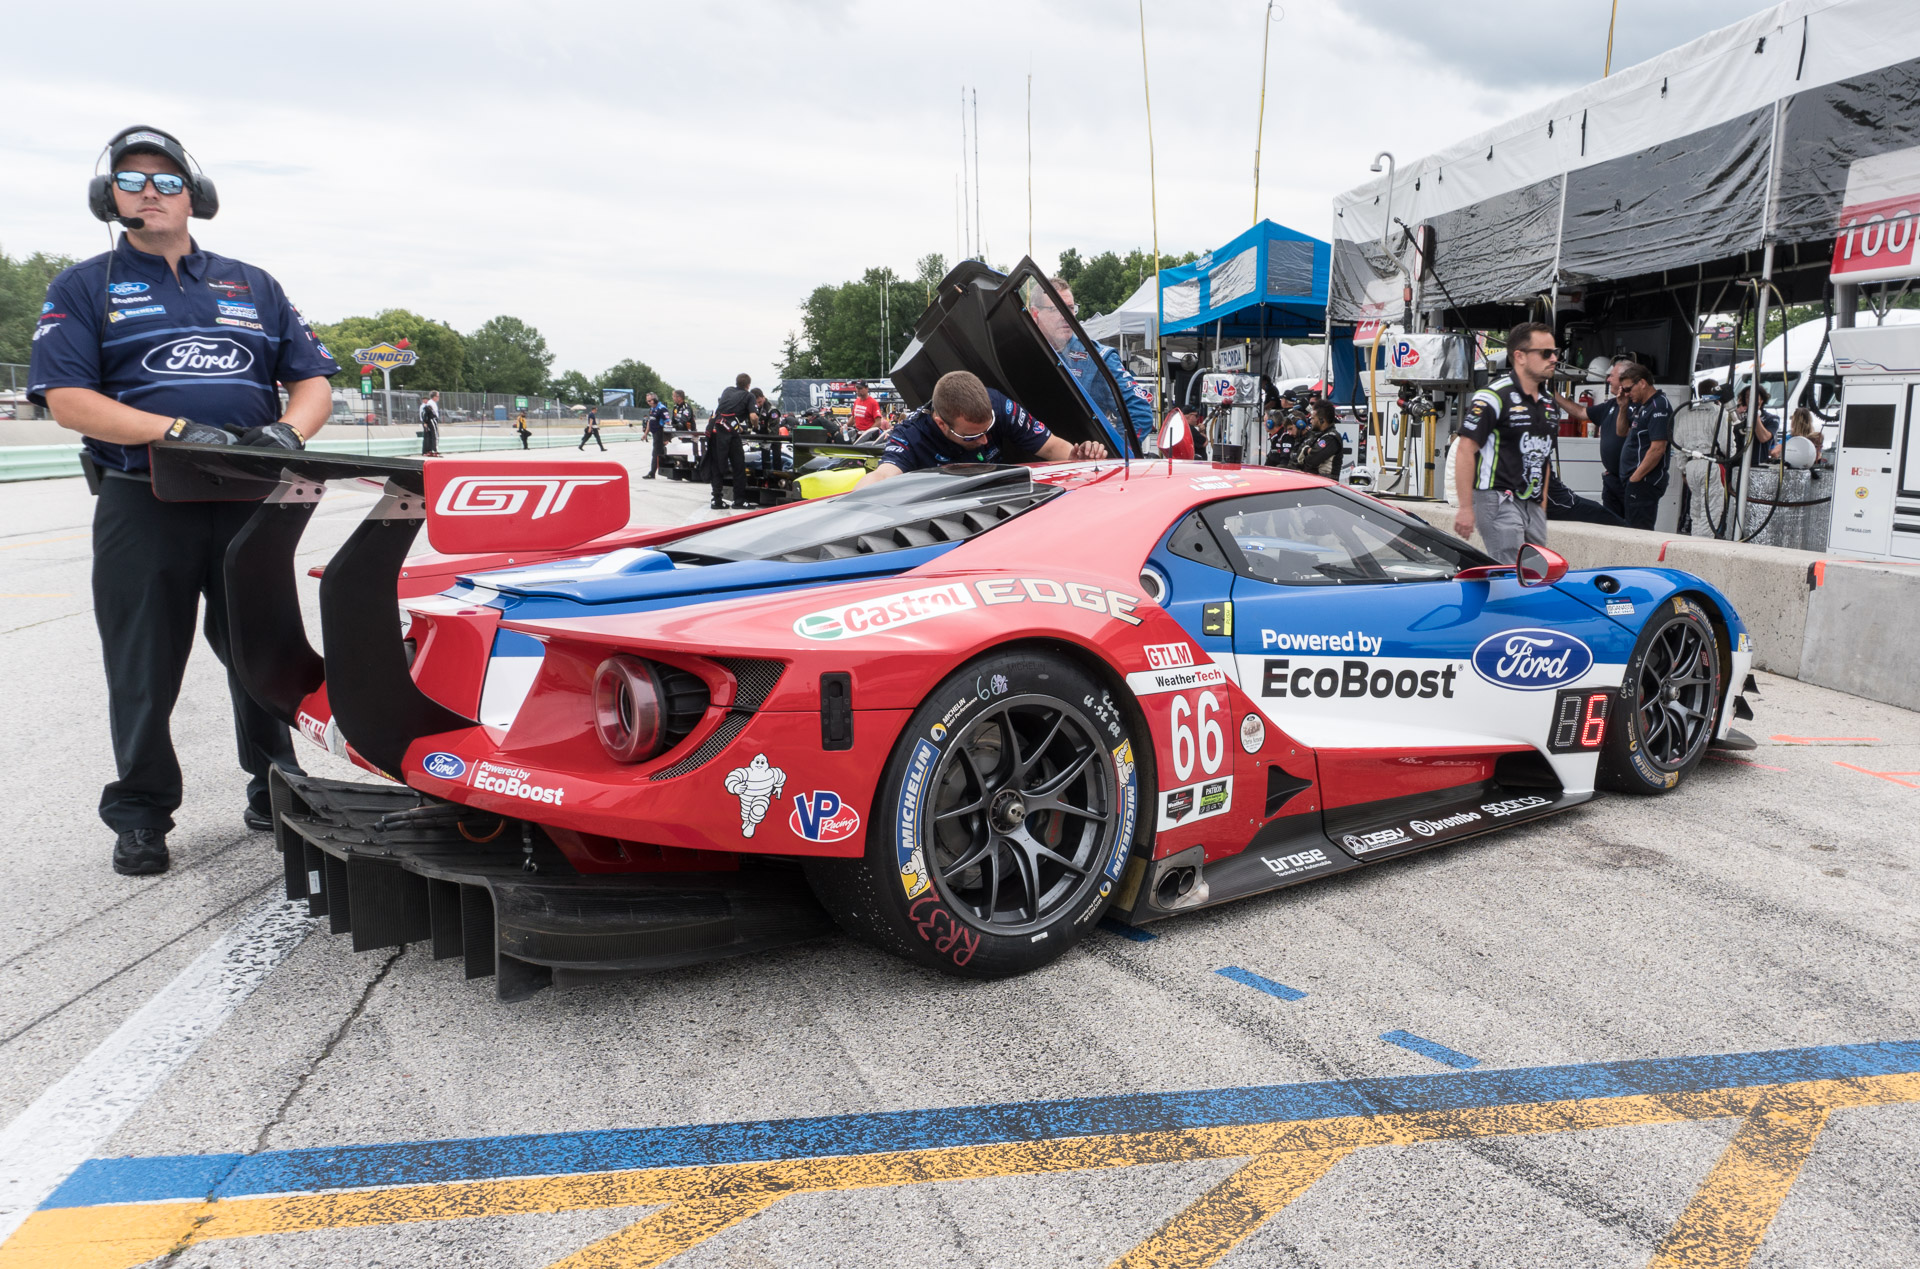 Up Close With The Ford Gt Lm Race Cars 95 Octane